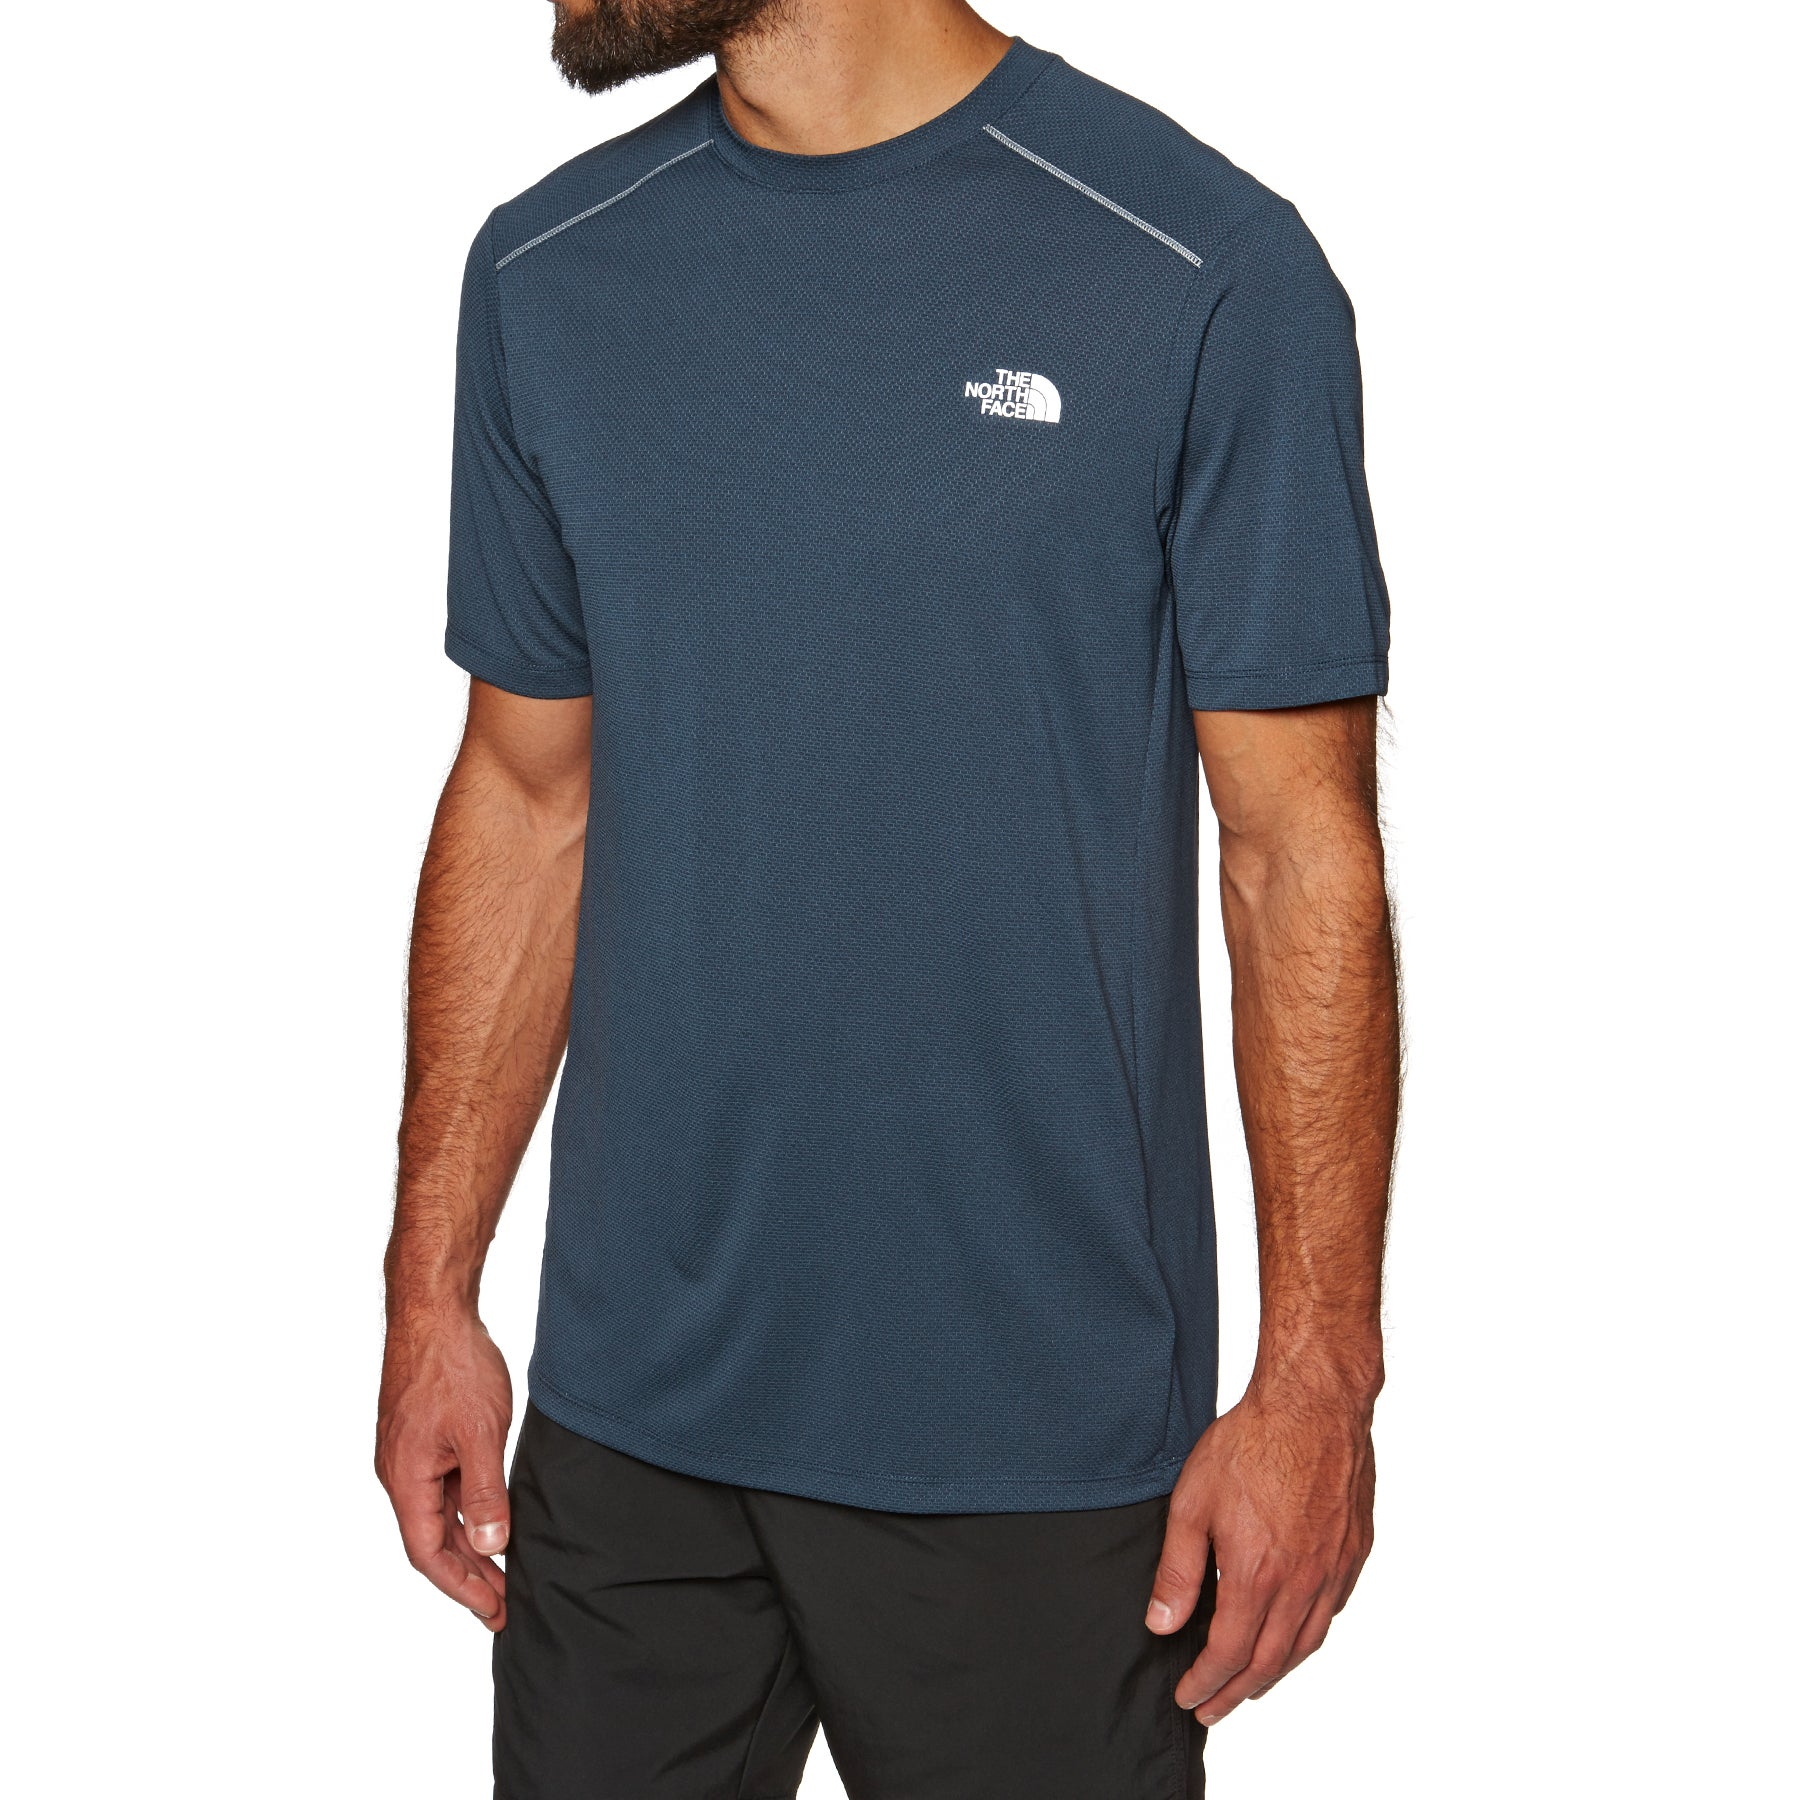 North Face 24/7 Tech Sports Top